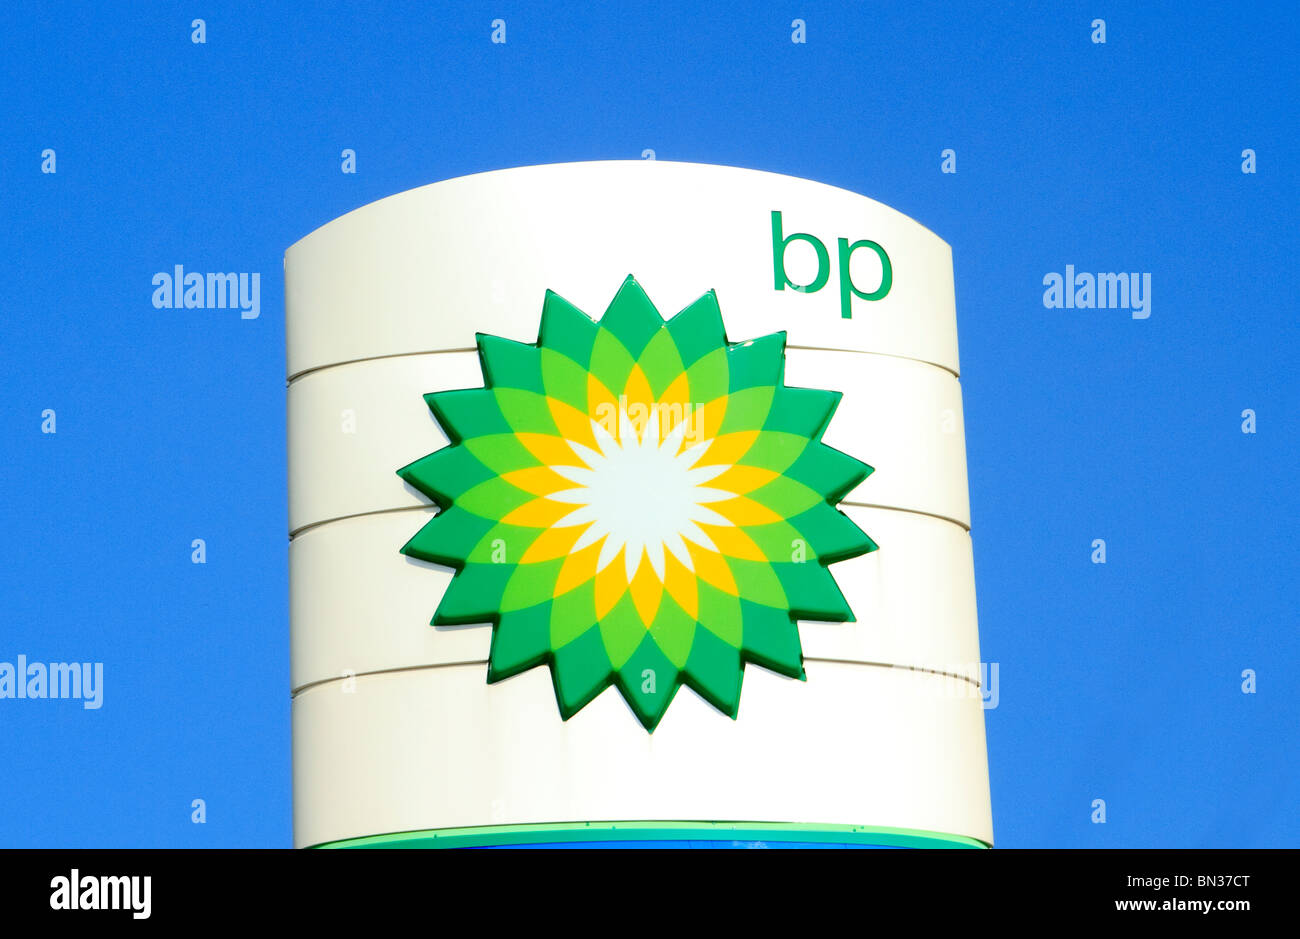 financial analysis british petroleum bp till Financial analysis british petroleum (bp) till 2006 4811 words | 20 pages financial statement analysis: a company's financial statements and ratios are good indicators of its performance over the years.